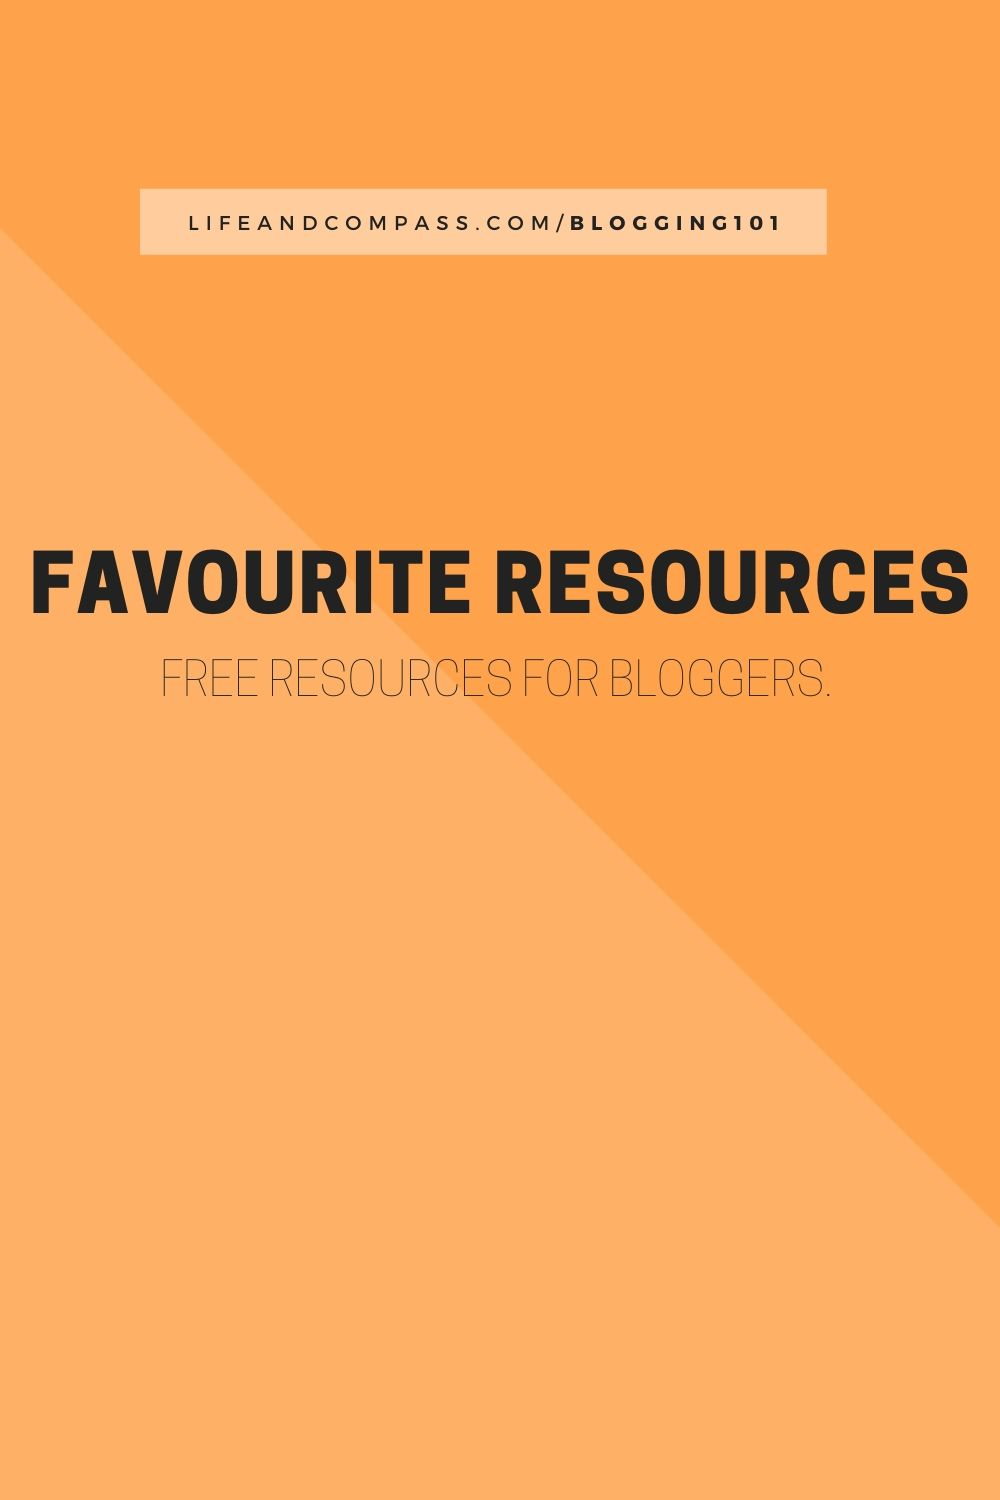 Every once in a while, I like to round up links to free resources that I've found to be helpful as a blogger and content creator.